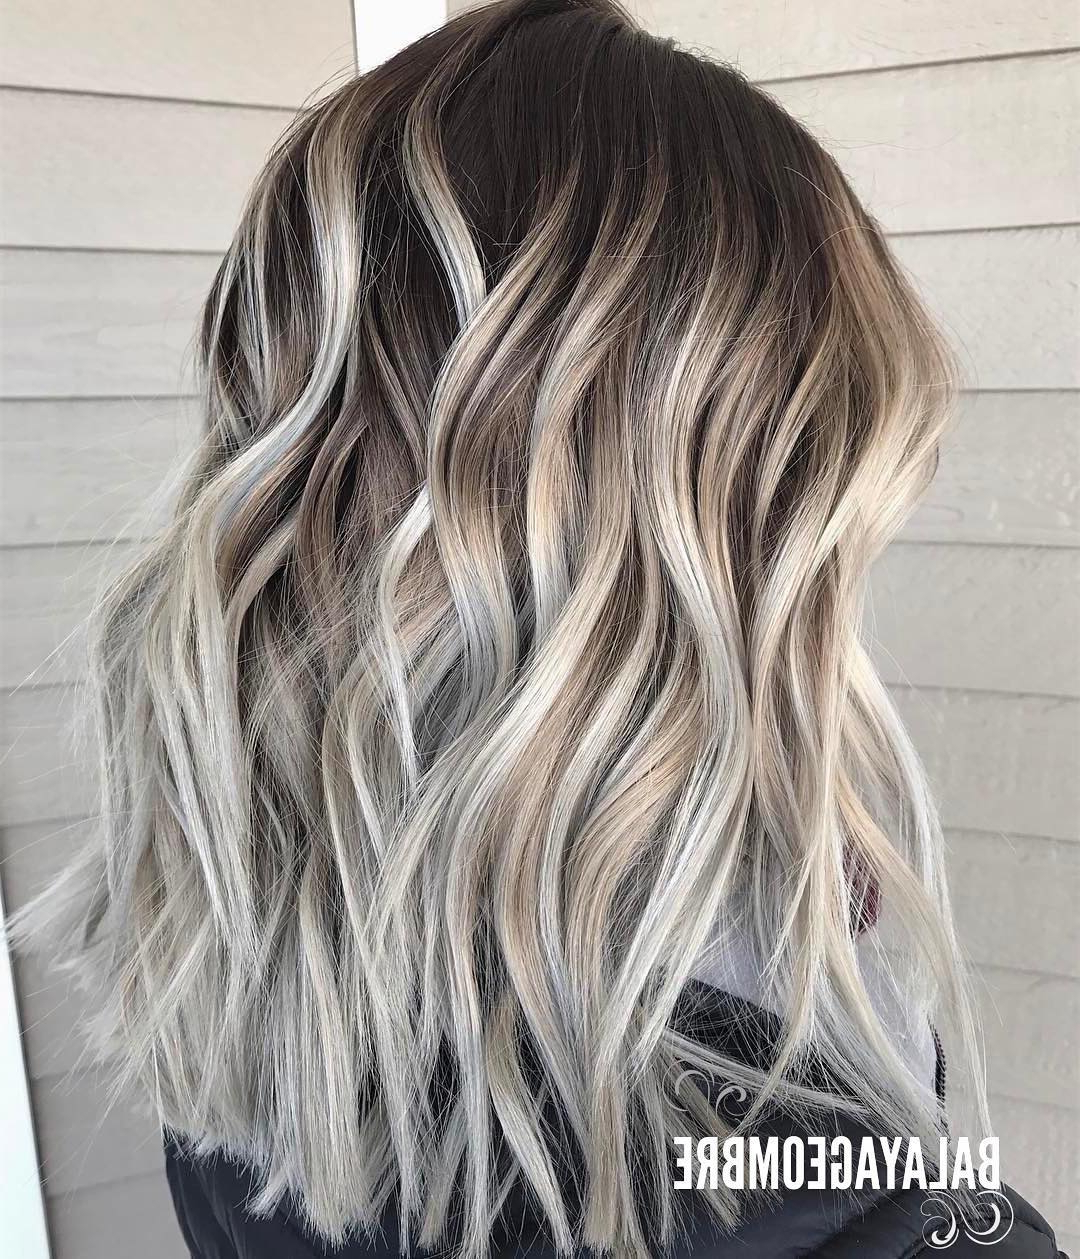 10 Best Medium Layered Hairstyles 2019 – Brown & Ash Blonde Fashion In 2018 Medium Haircuts For Women With Grey Hair (View 13 of 20)